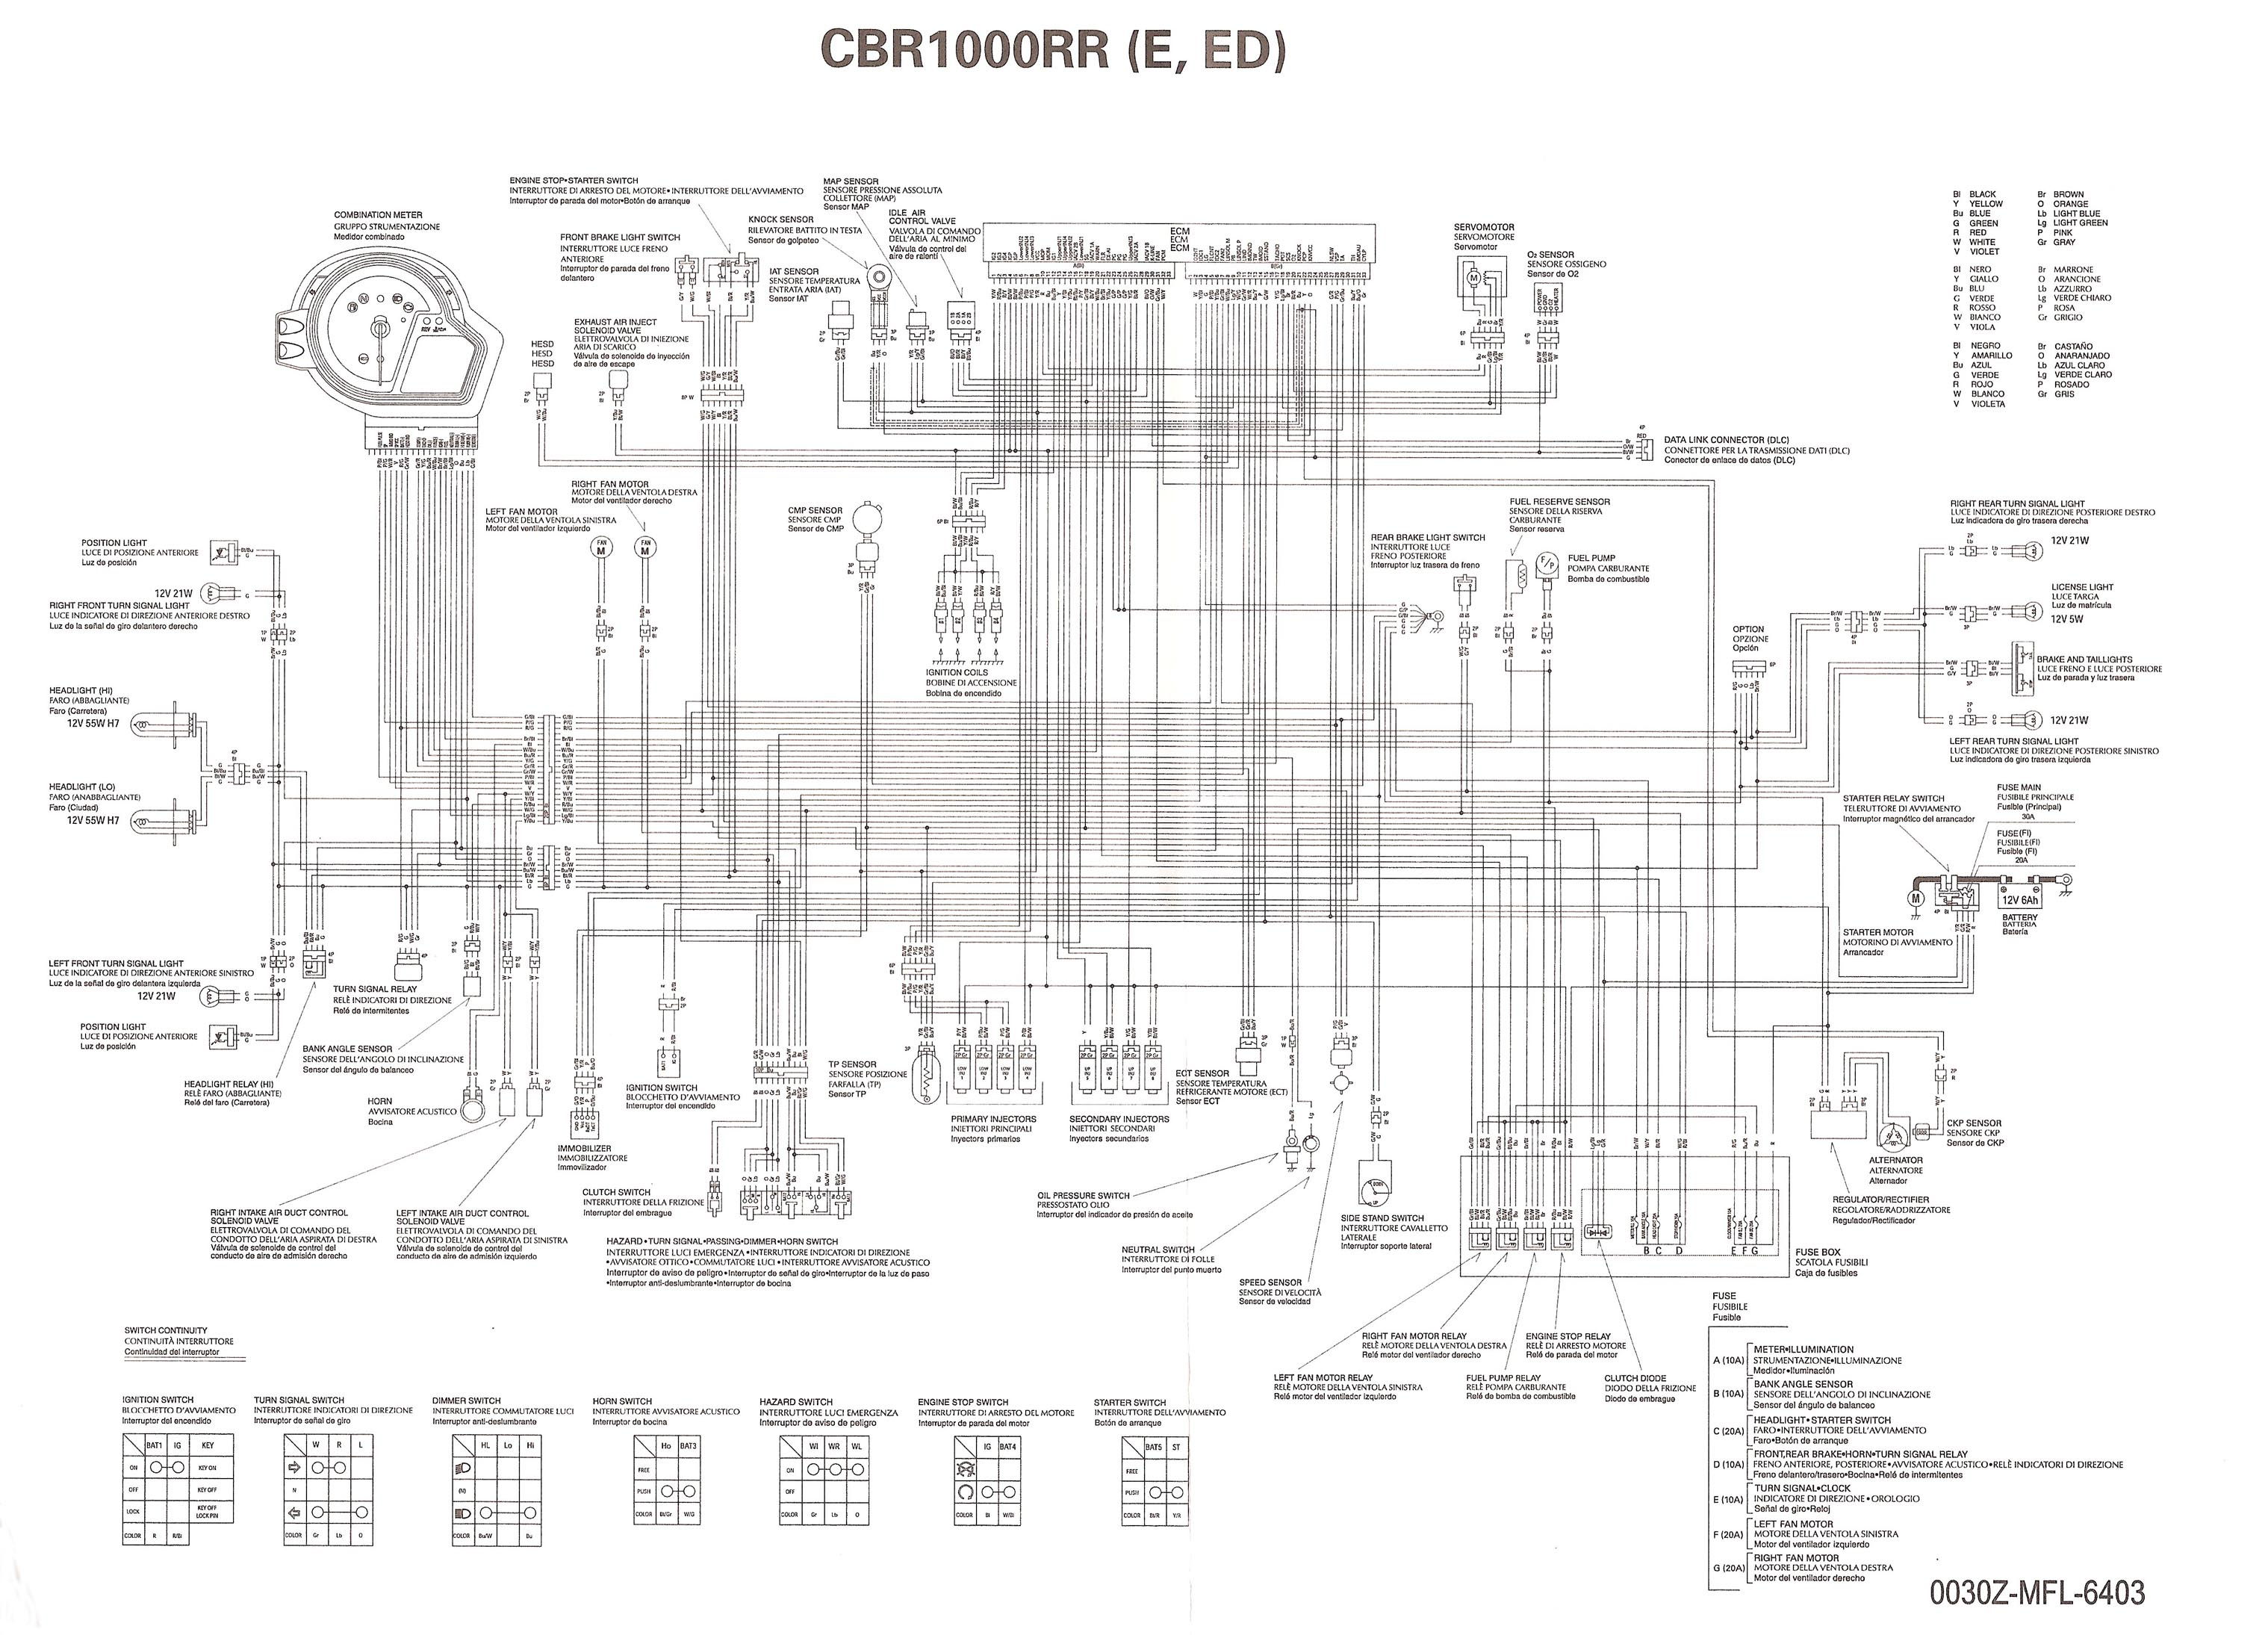 2000 jeep cherokee fuel pump wiring diagram together with 2007 chrysler sebring fuse [ 3037 x 2189 Pixel ]